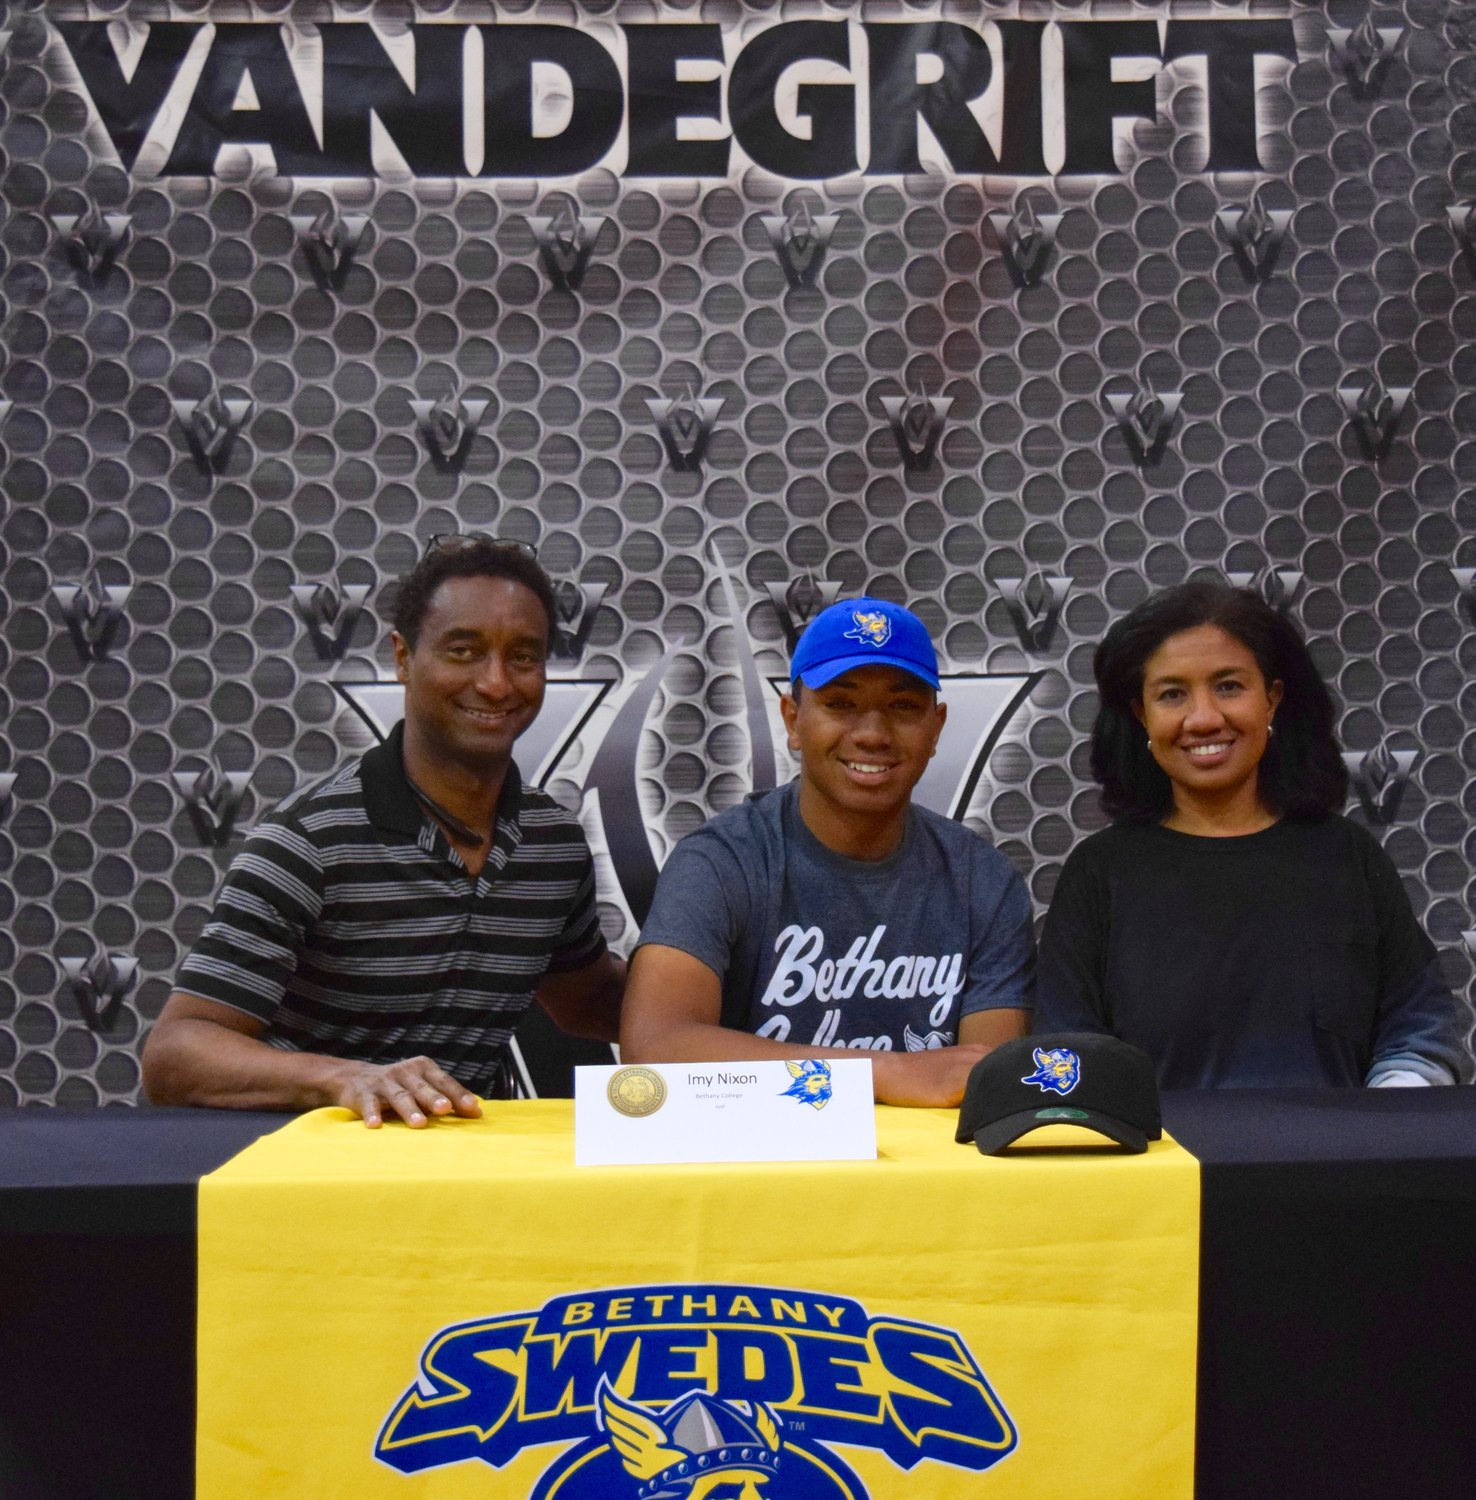 Imy Nixon signed on to play golf at Bethany College at a signing day celebration Friday morning at Vandegrift High School.